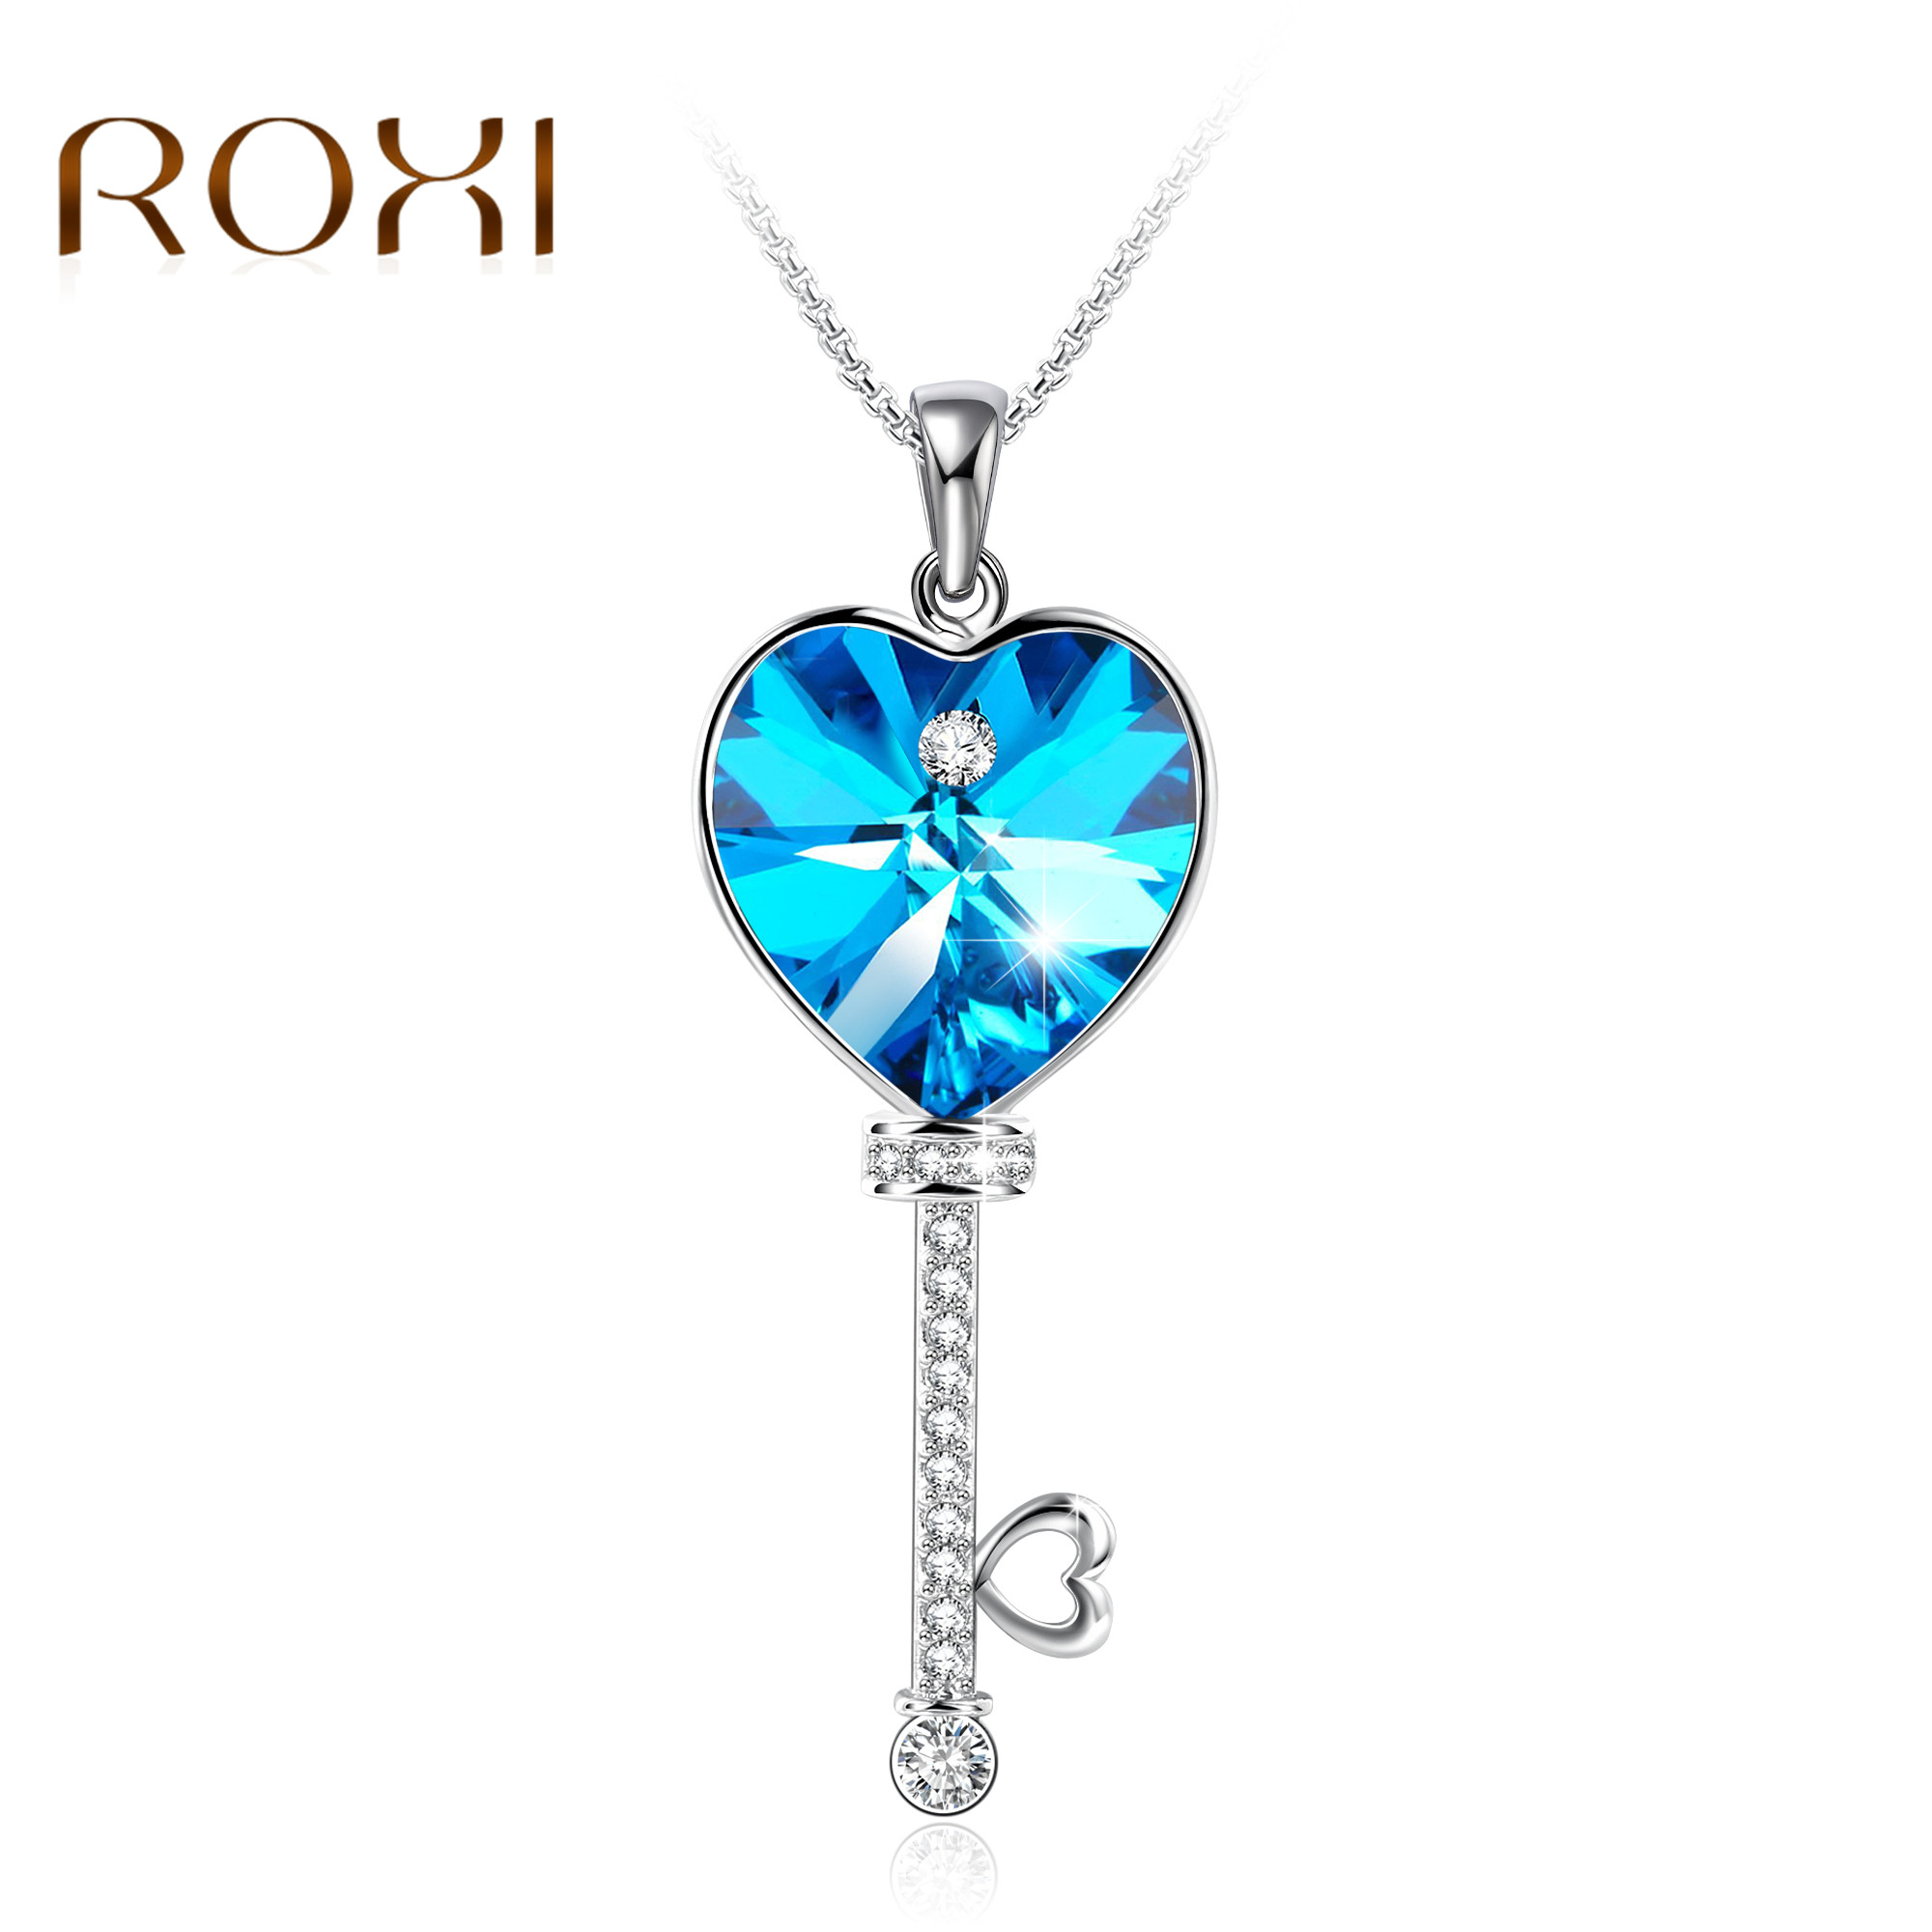 2019 Necklace Women Heart Shape Blue Crystal Pendant Necklace Fine Jewelry Key of Love Choker Necklace for Valentine's Gifts